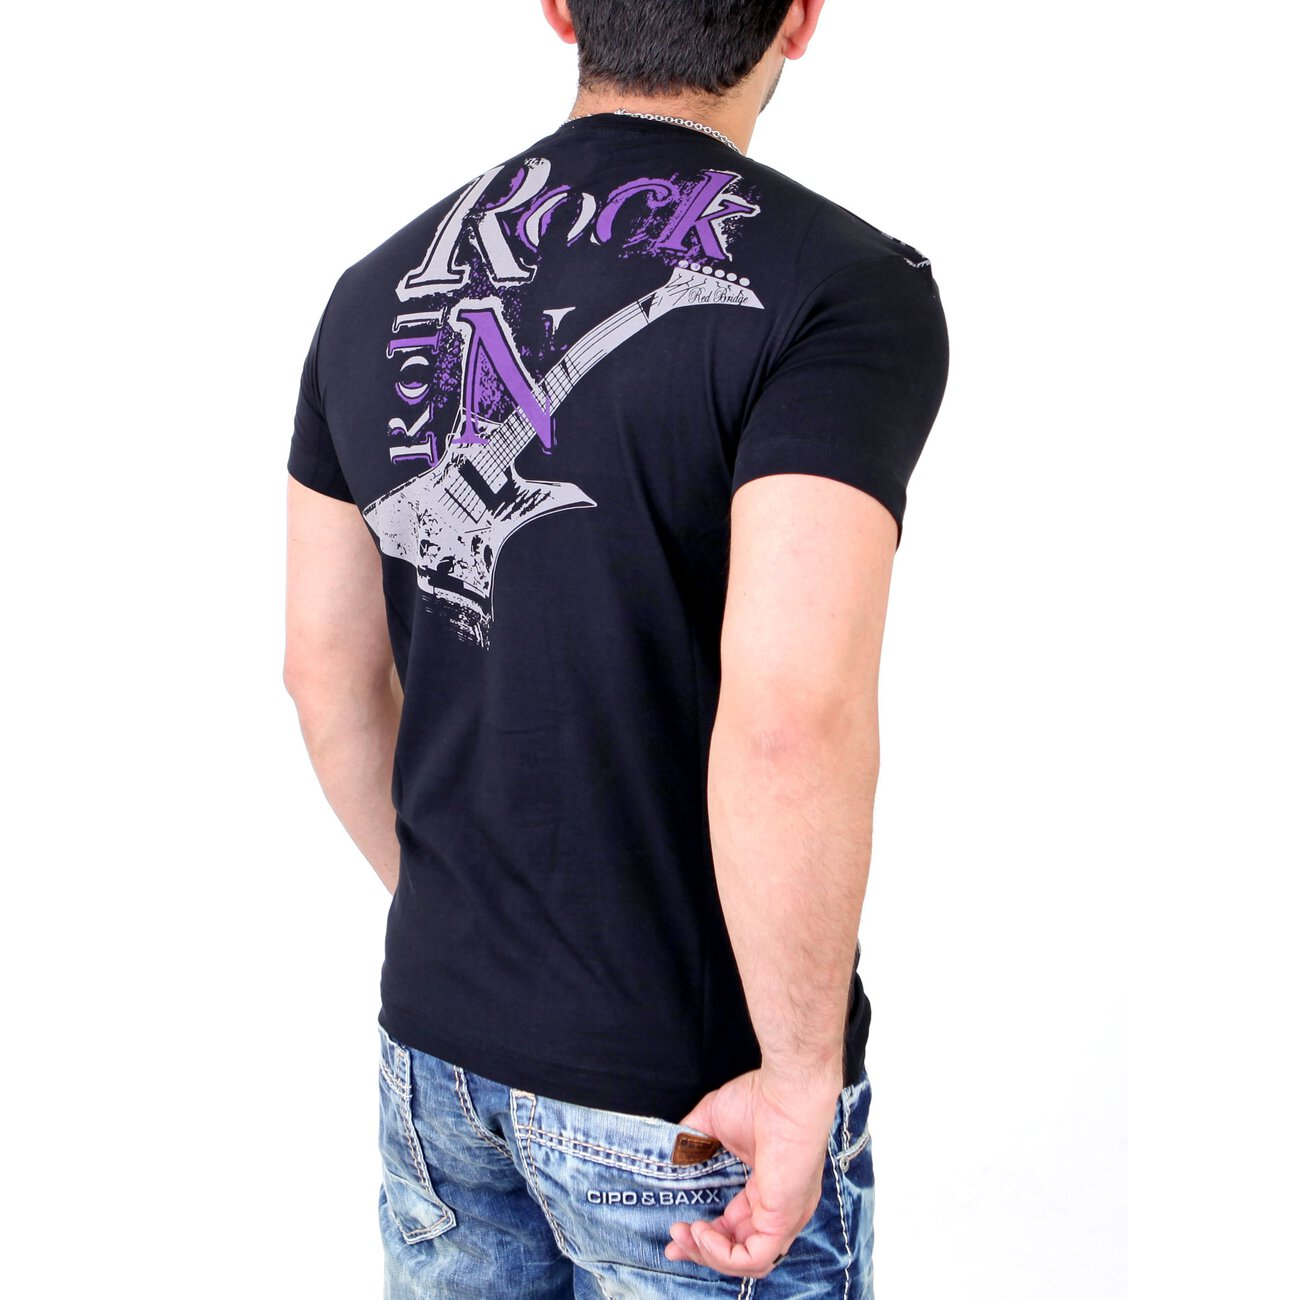 redbridge t shirt herren clubwear rock strass shirt rb 1364. Black Bedroom Furniture Sets. Home Design Ideas